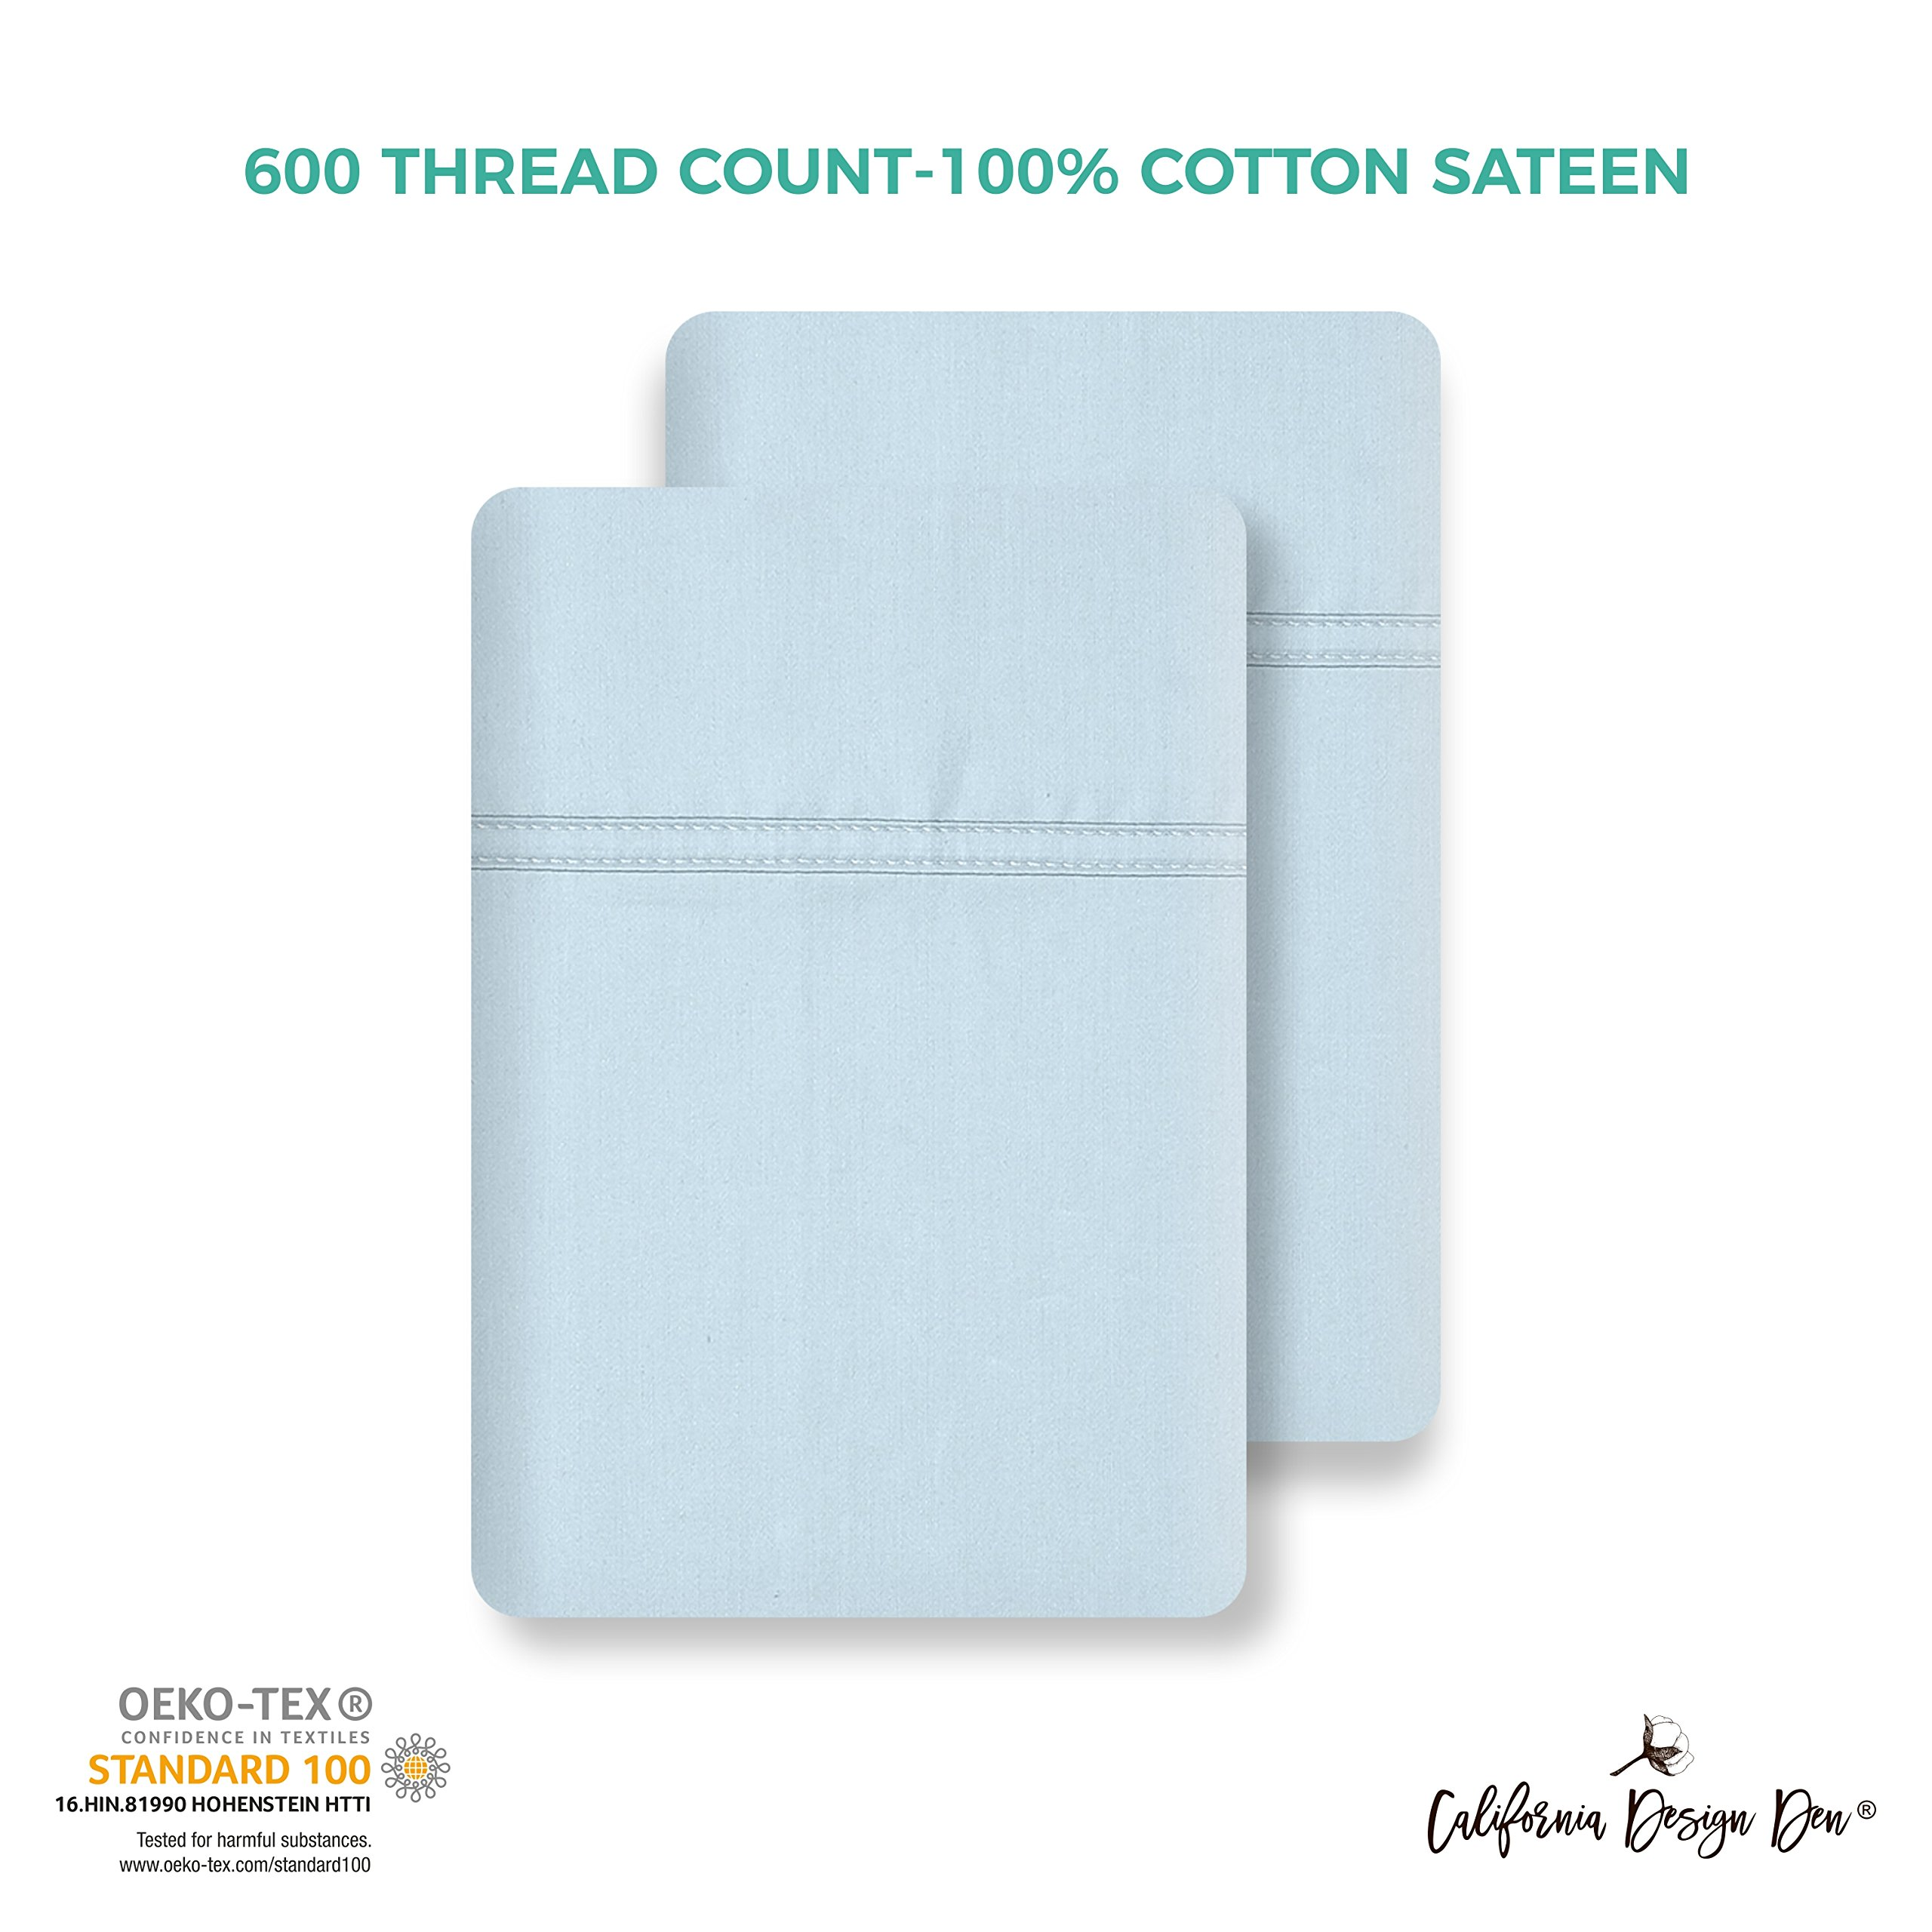 California Design Den 600 Thread Count Pillowcase Set of 2, 100% Long-Staple Combed Cotton, Breathable, Soft Sateen Weave Luxury Hotel Quality Pillow Cases (Standard, Spa) by California Design Den (Image #2)